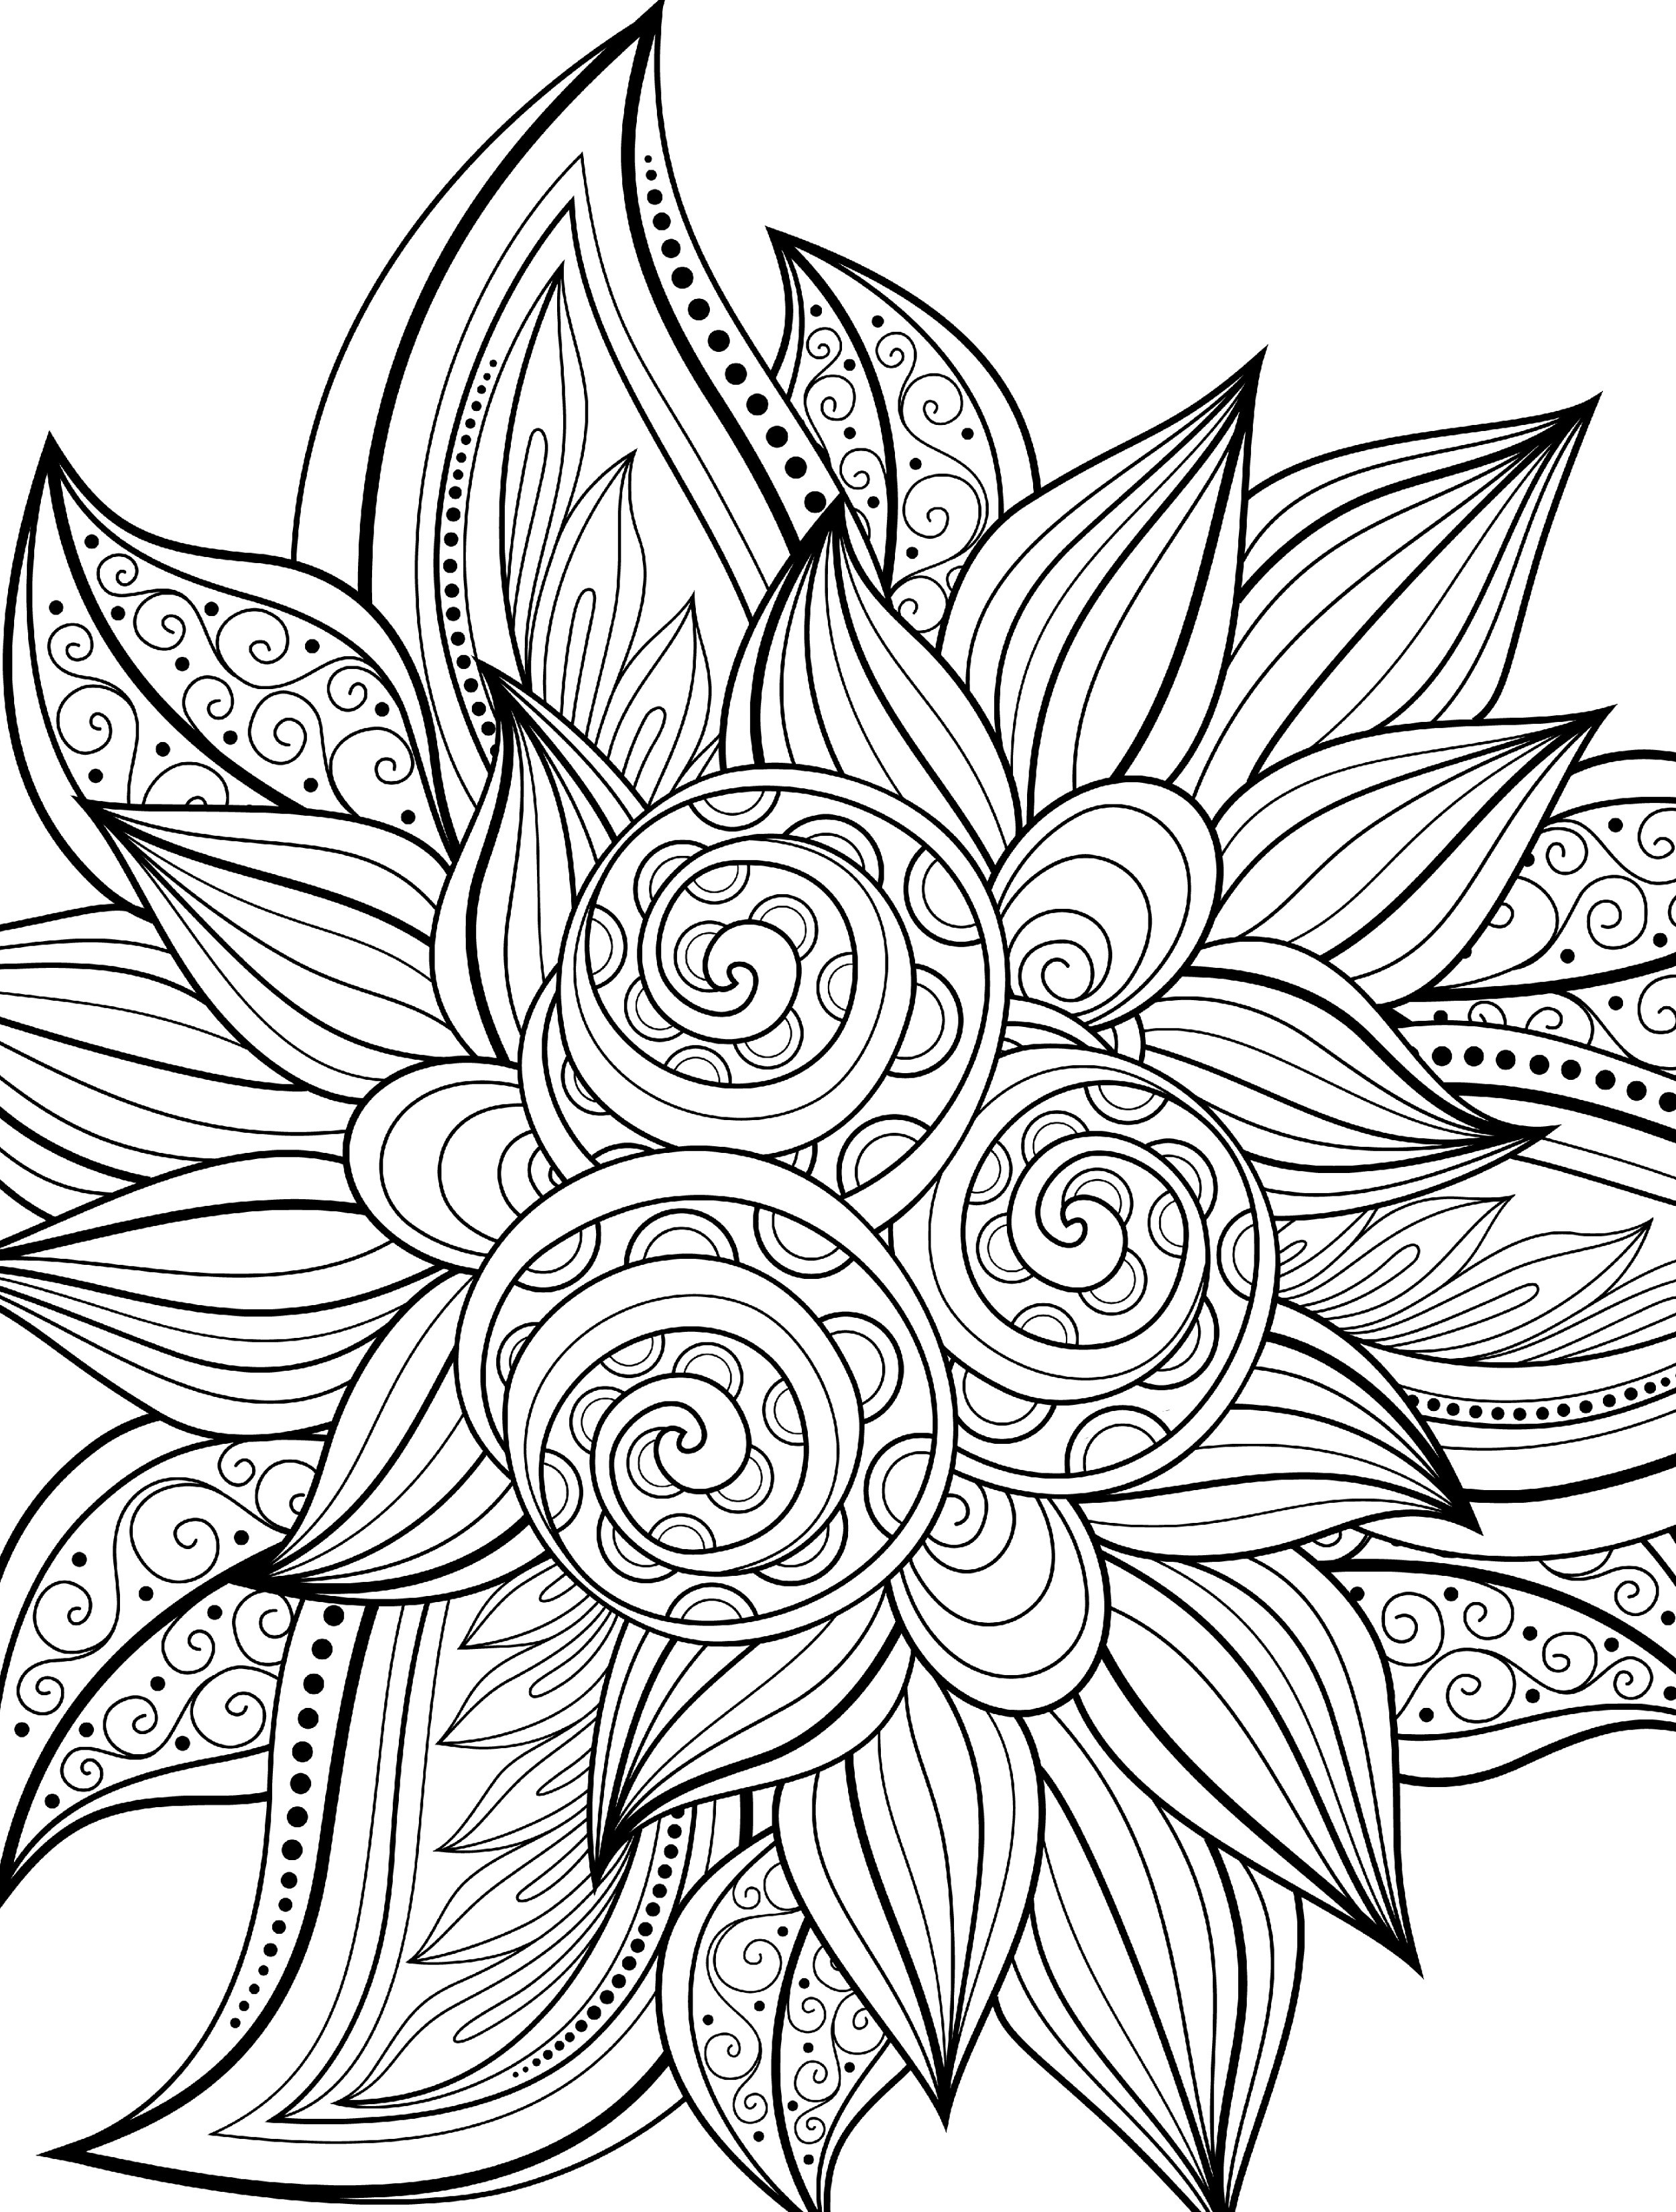 2500x3300 Well Suited Ideas Cool Coloring Pages For Adults To Print 10 Year